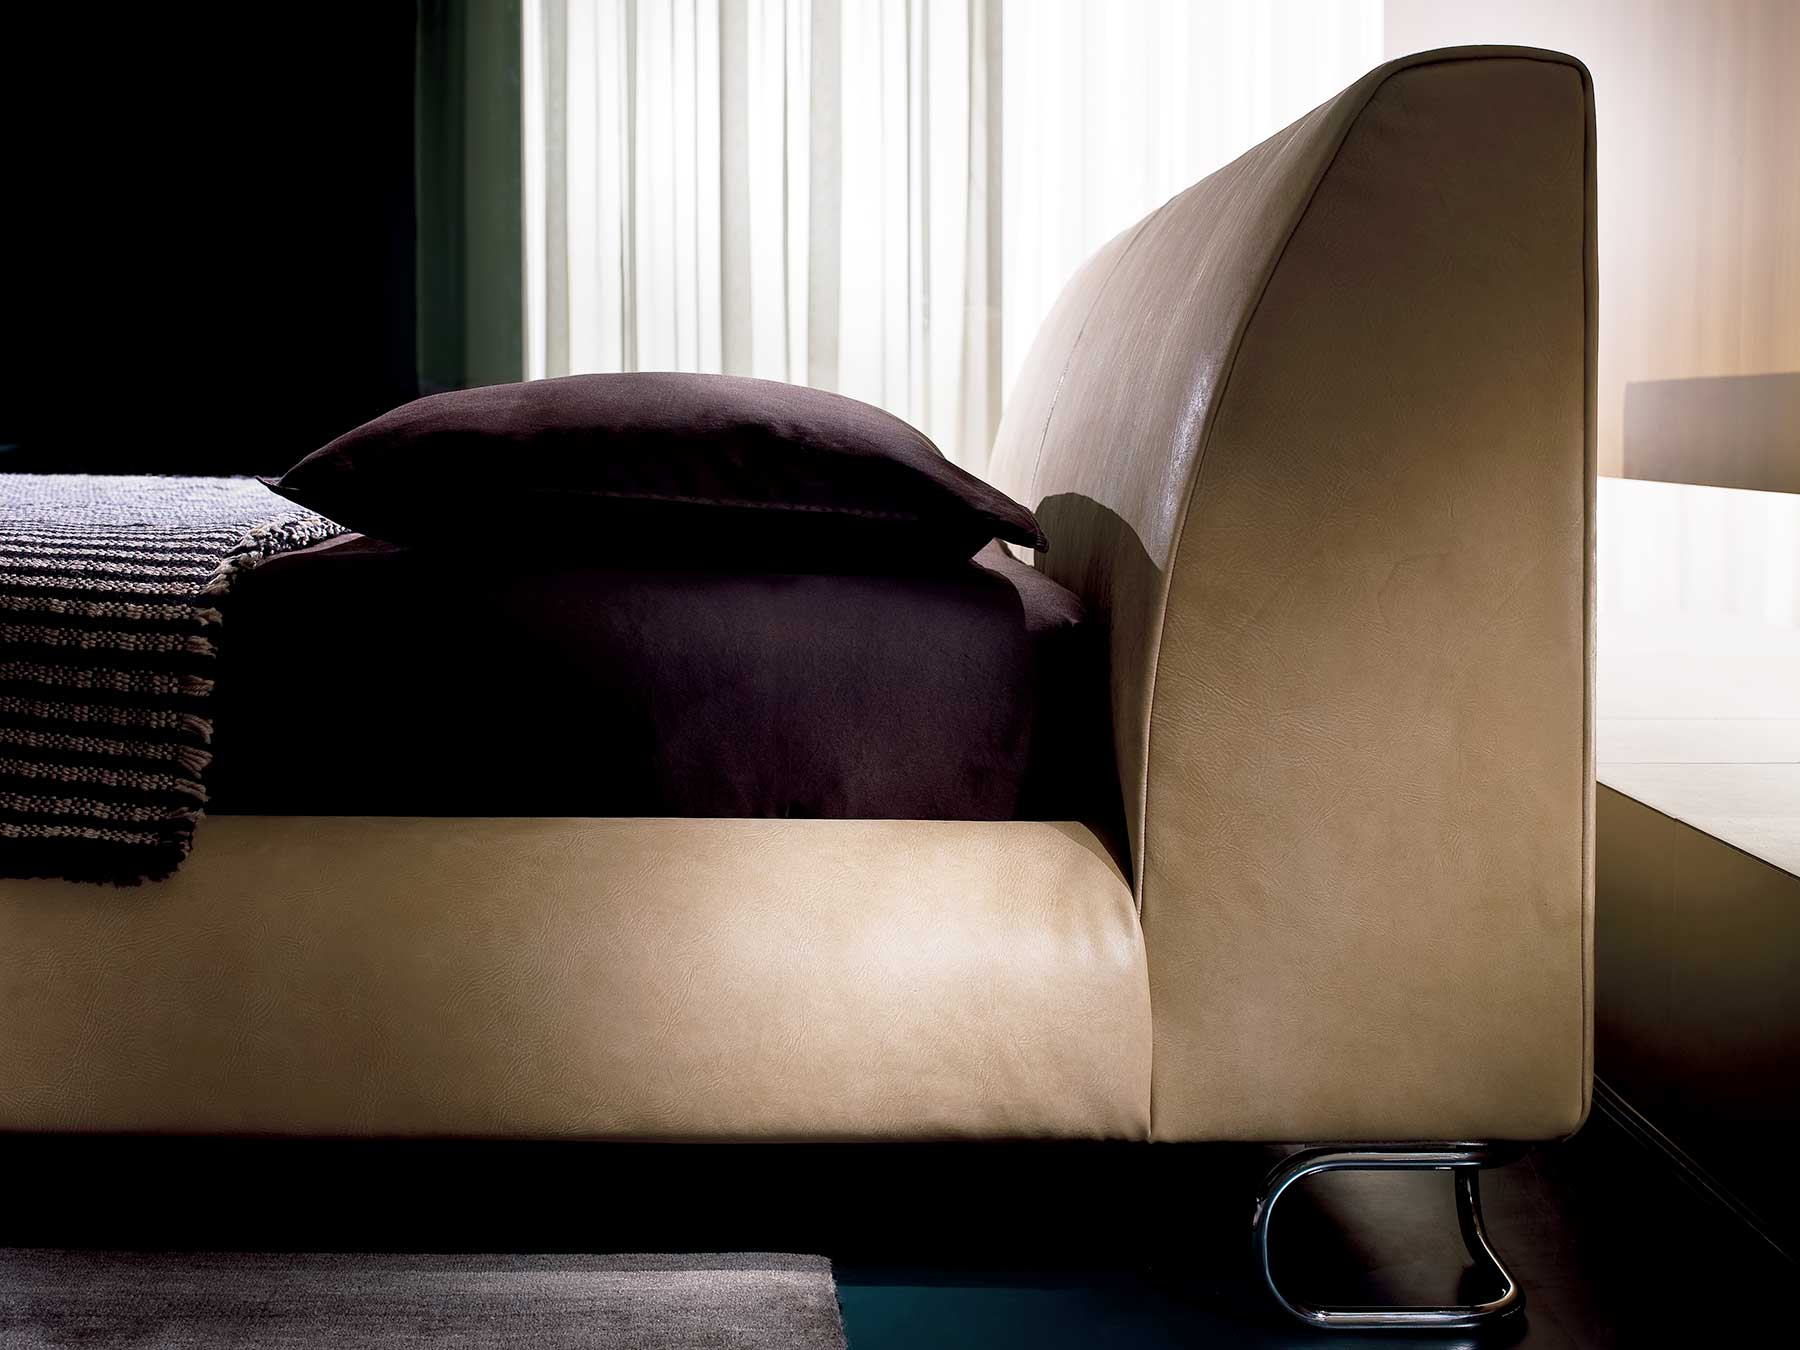 Mauro Lipparini designed an elegant and refined interior furniture collection. Add-Look leather bed is luxurious and handcrafted in Italy. Shop online.